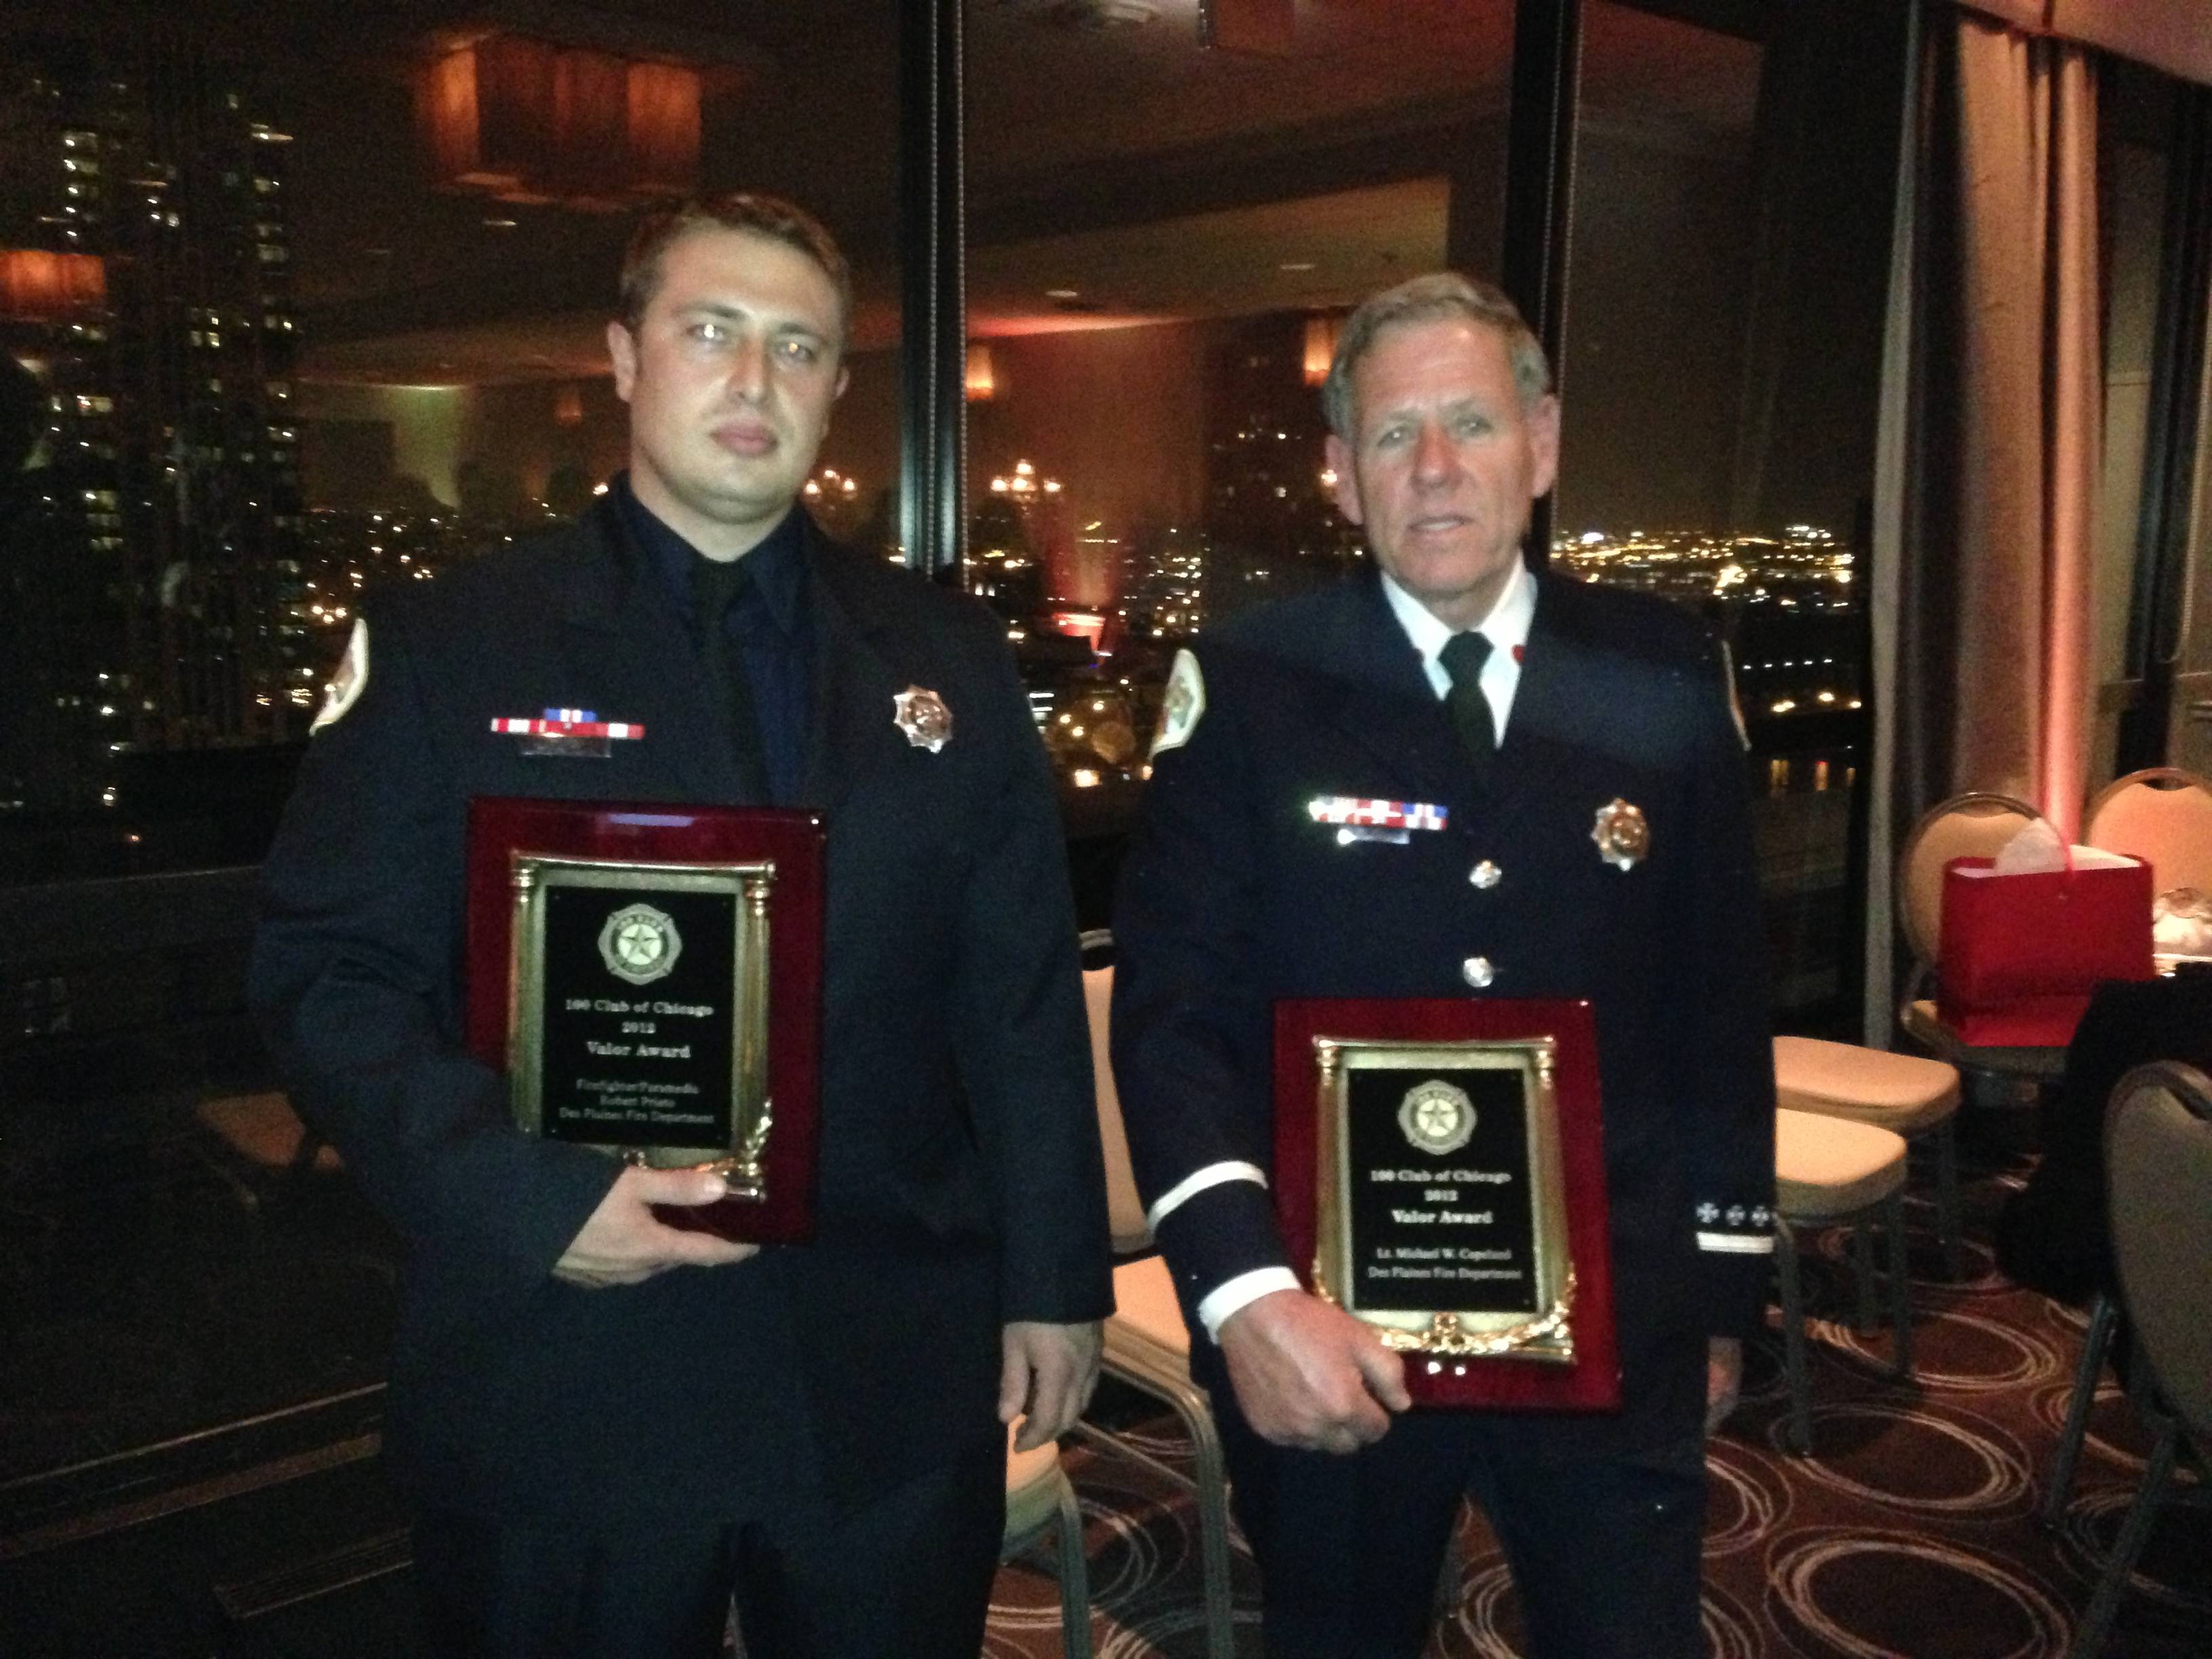 Firefighter/Paramedic Robert Prieto, left, and Retired Fire Lieutenant Michael Copeland of the Des Plaines Fire Department display their Awards of Valor following the 100 Club of Chicago's Valor Awards Ceremony, November 8, 2012, in the ballroom of the Holiday Inn Mart Plaza in Chicago.  The firefighters received the award for their selfless actions under great personal risk in saving a child and his grandmother from a basement fire in December 2011.